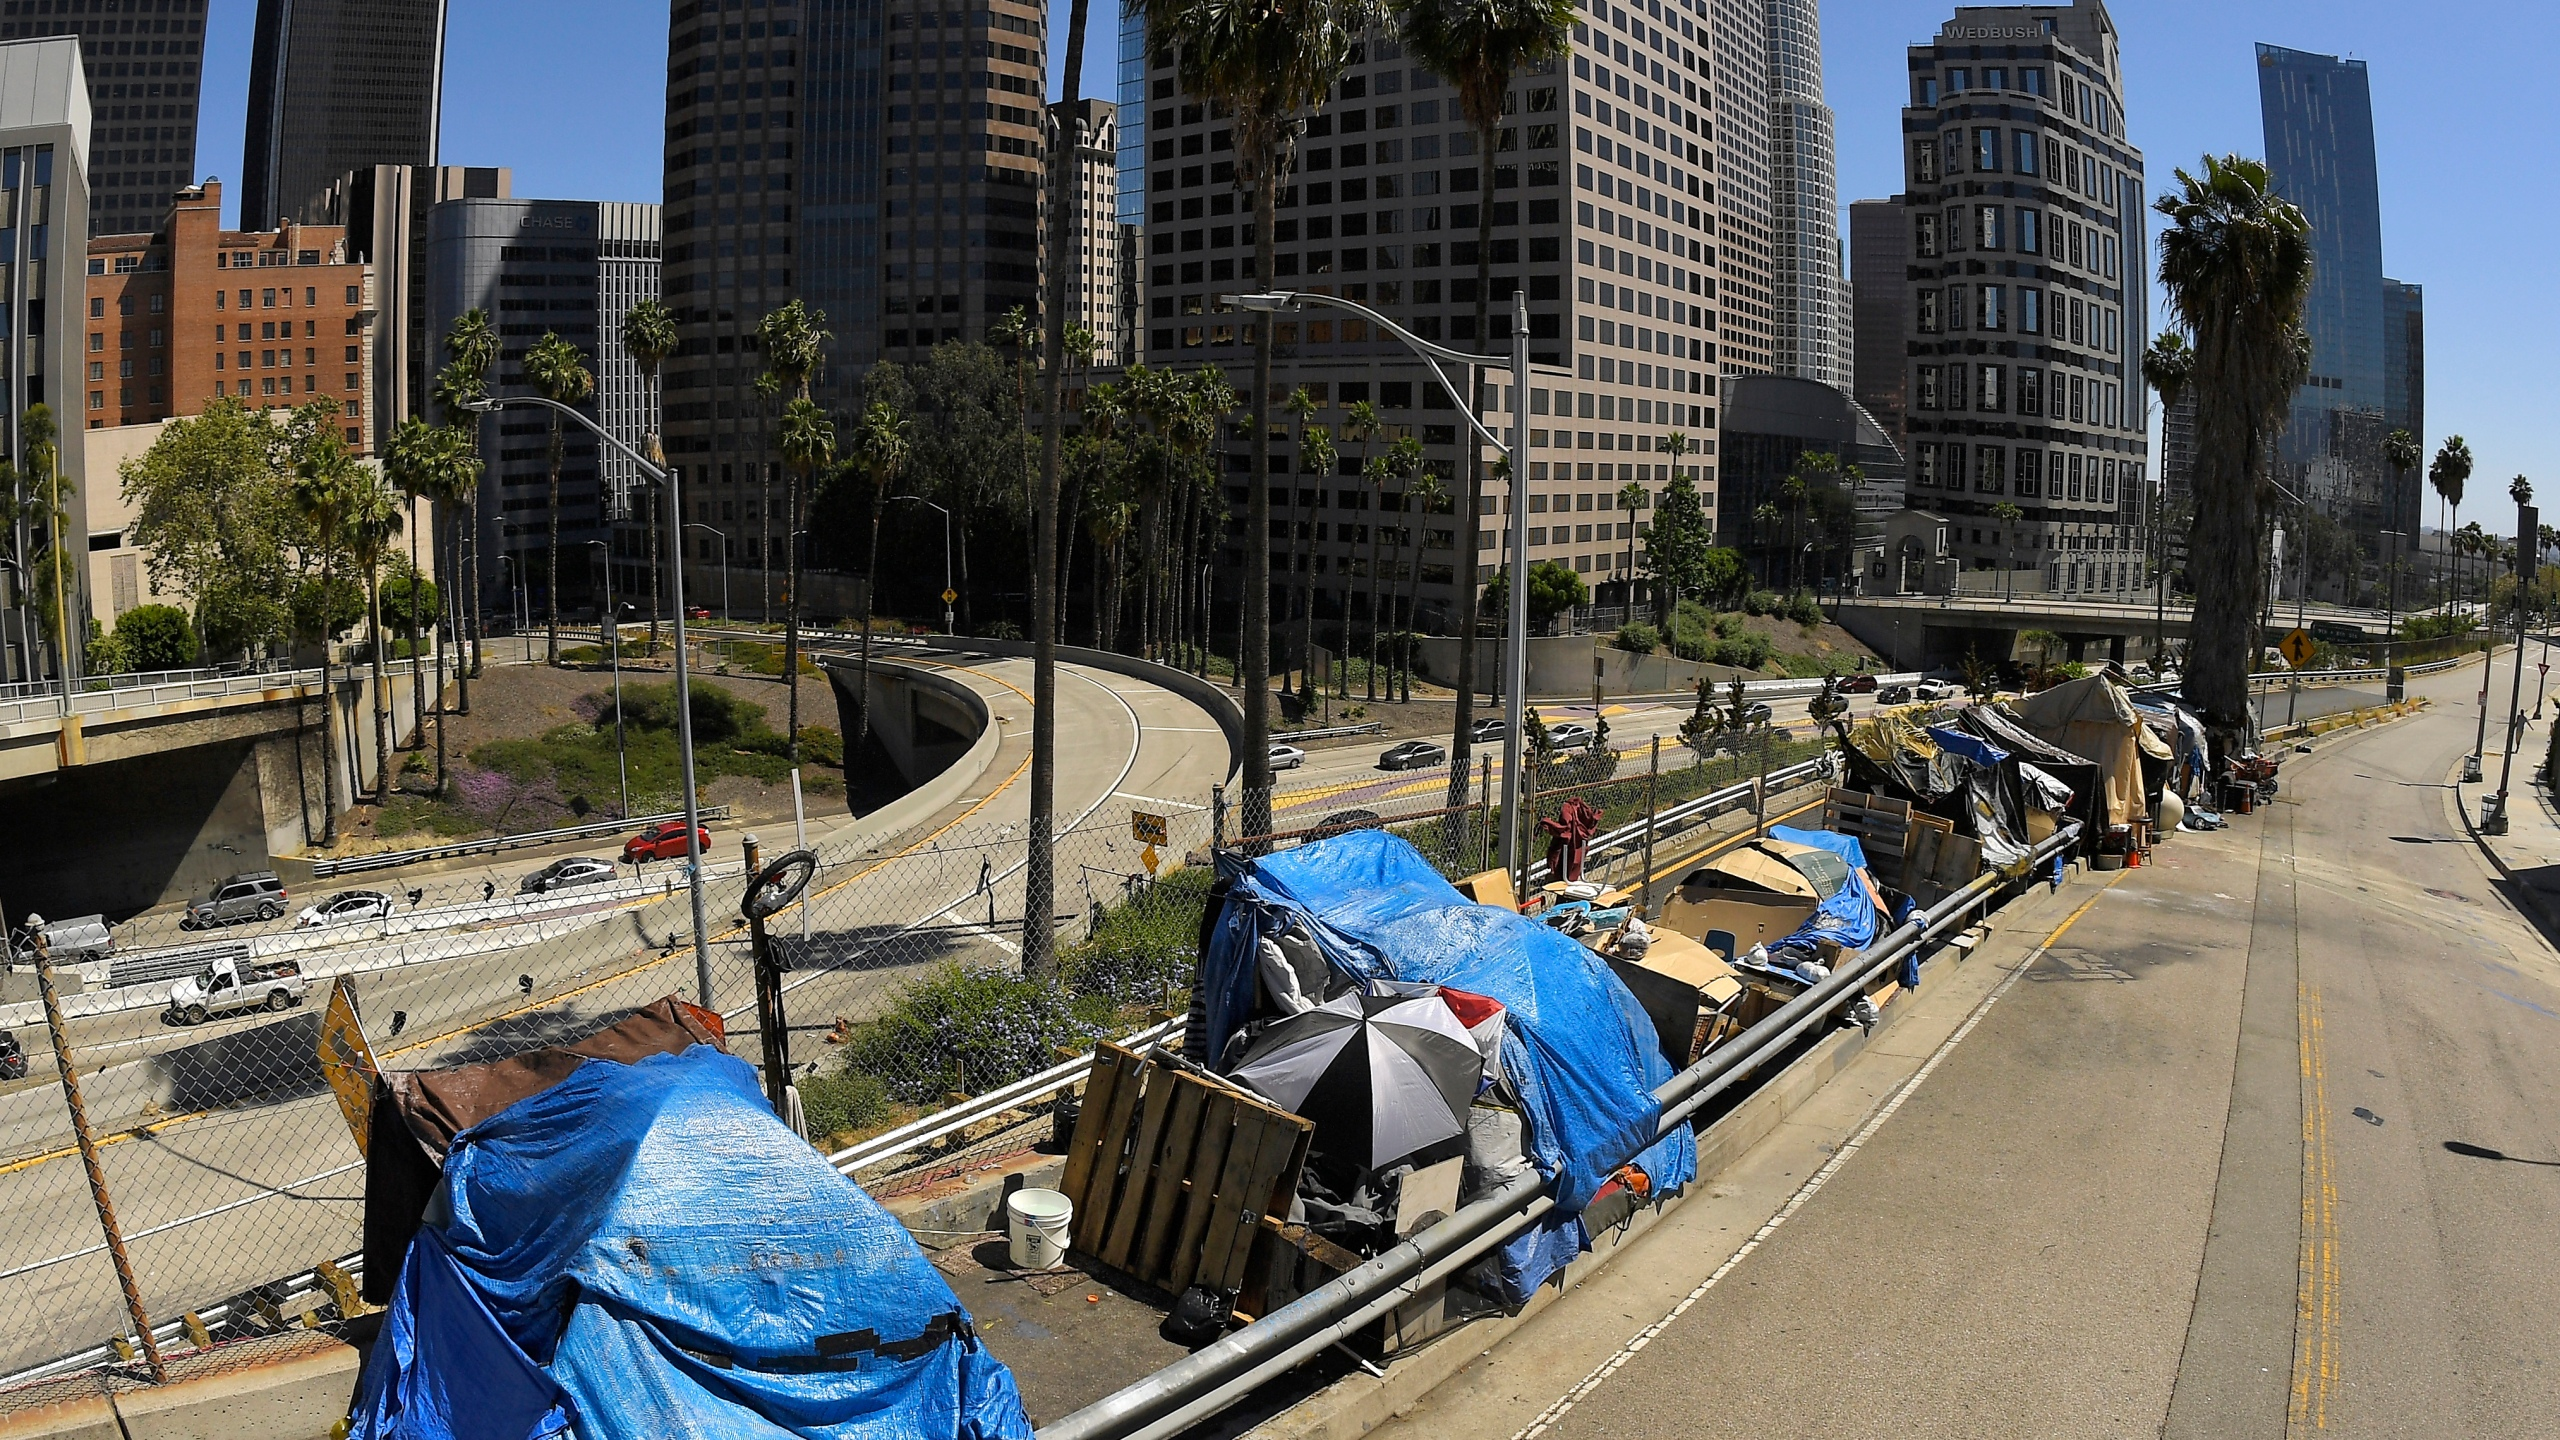 A homeless encampment is seen on Beaudry Avenue as traffic moves along Interstate 110 in downtown Los Angeles on May 21, 2020. (Mark J. Terrill / Associated Press)